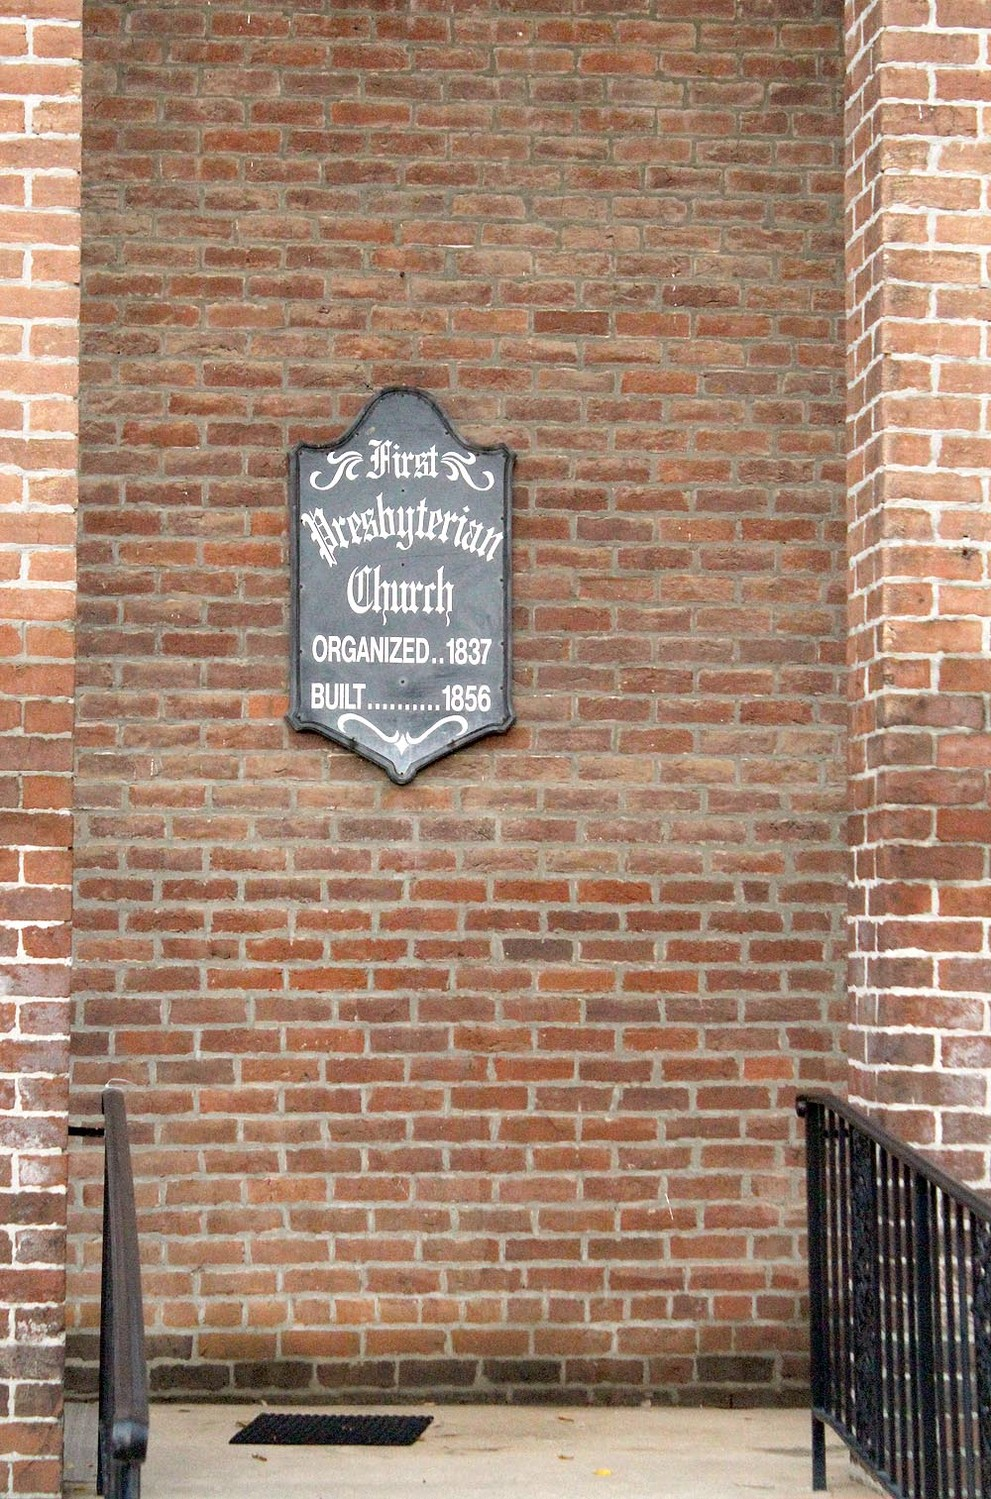 THE FRONT WALL of the church declares First Presbyterian Church was organized in 1837 and built in 1856.